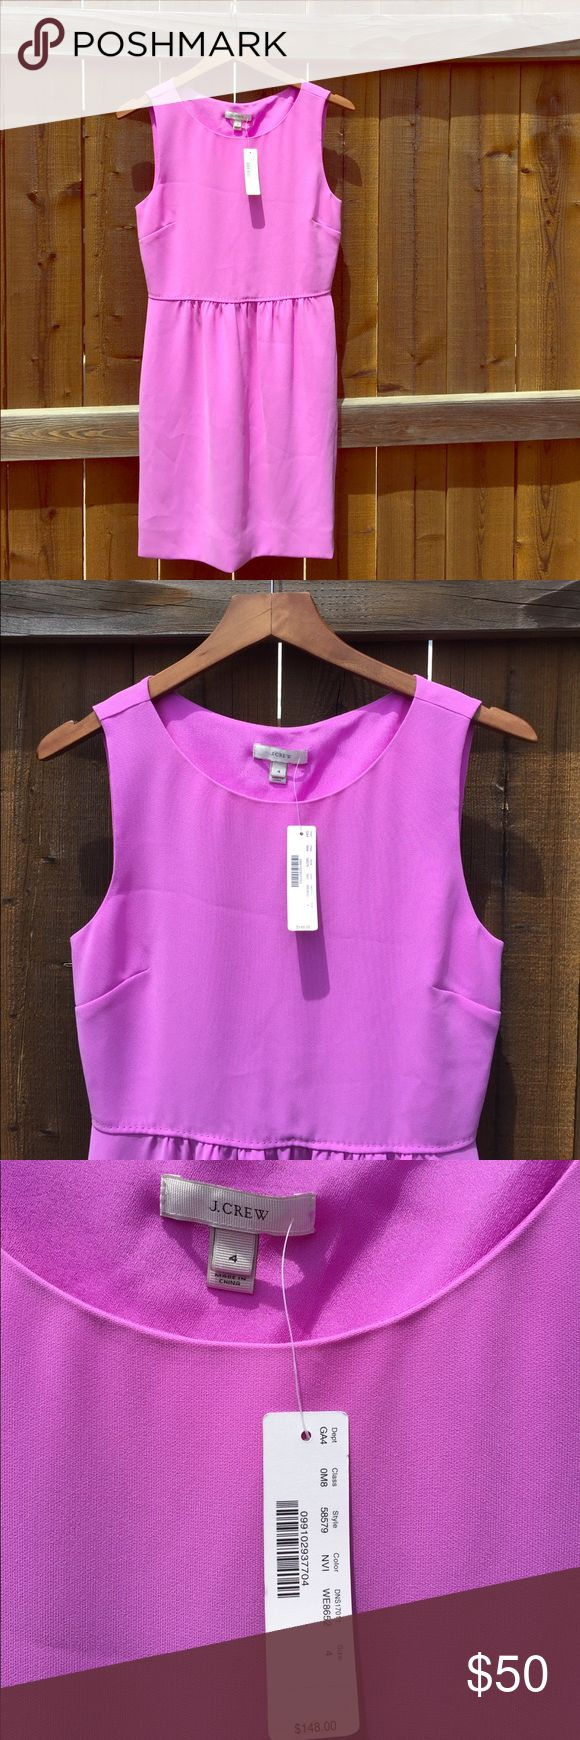 Business or going out J. Crew dress! New Violet (bubblegum pink/ purple) J. Crew dress. Never been worn -- I inherited it from my sister & it fits great but I just don't wear pinks :/. I'm 5'6 & wear size 4 or 6 (34D bra & 27.5 waist & 37 hip). Trying on this dress in comes to just above knee length. J. Crew Dresses